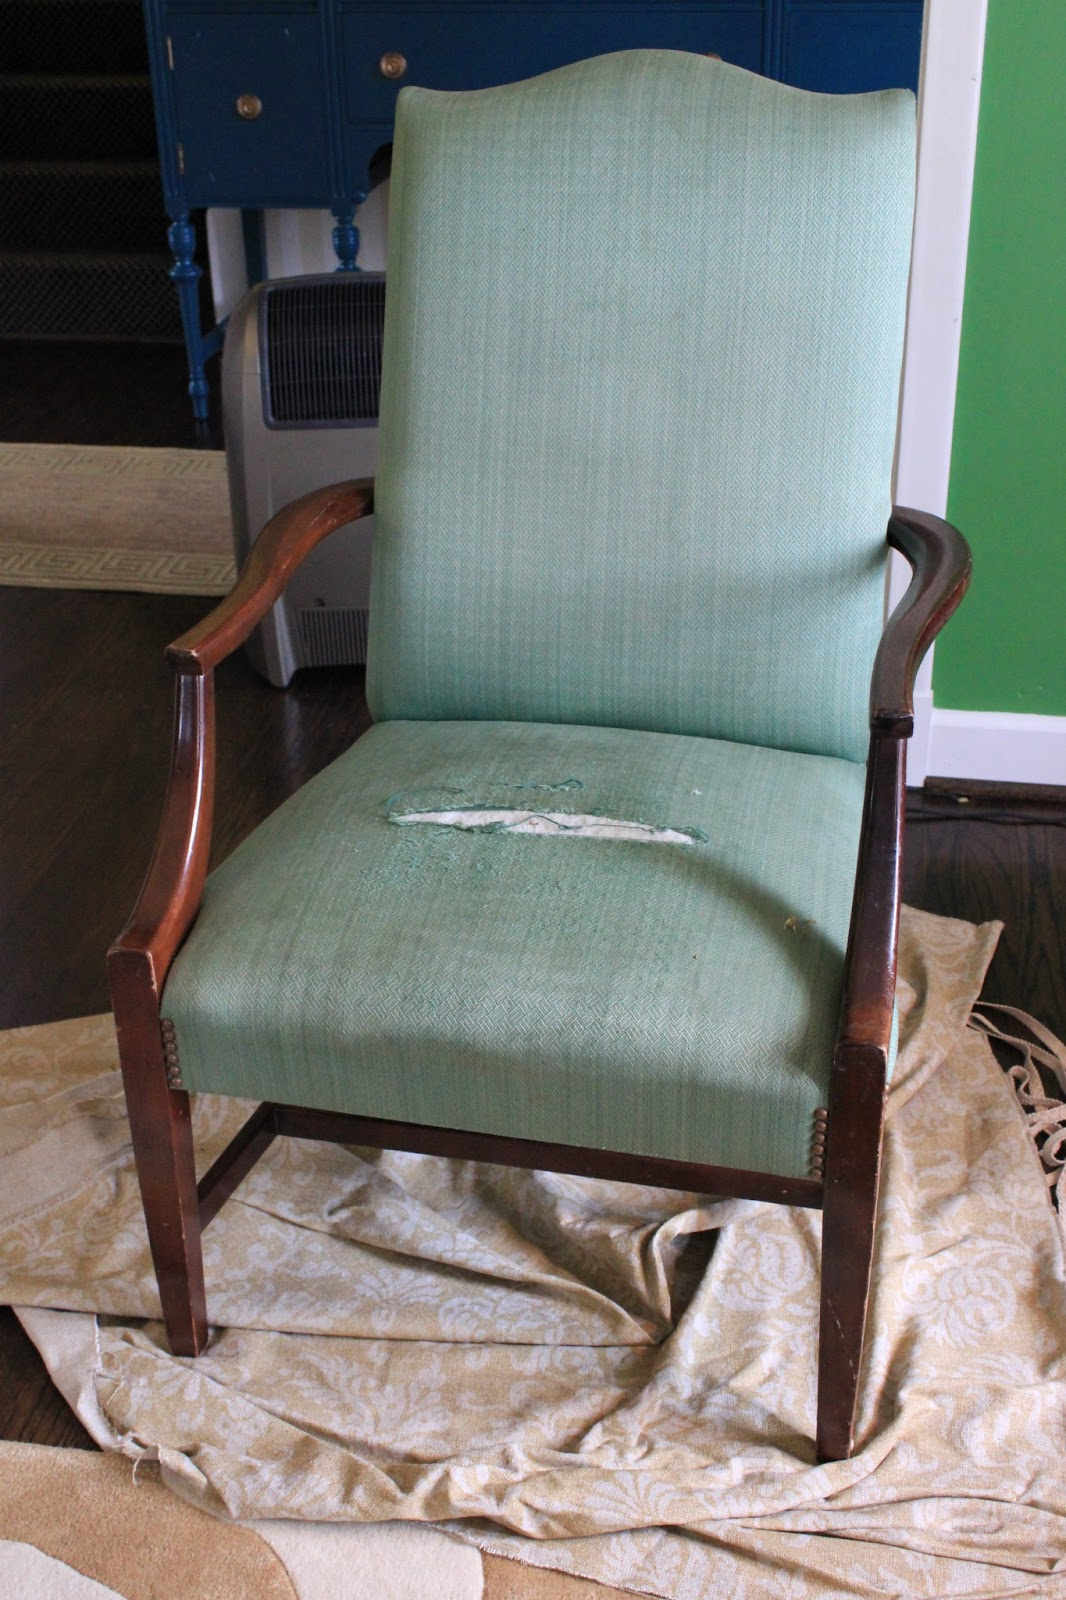 Westhampton DIY: How to Reupholster a Chair